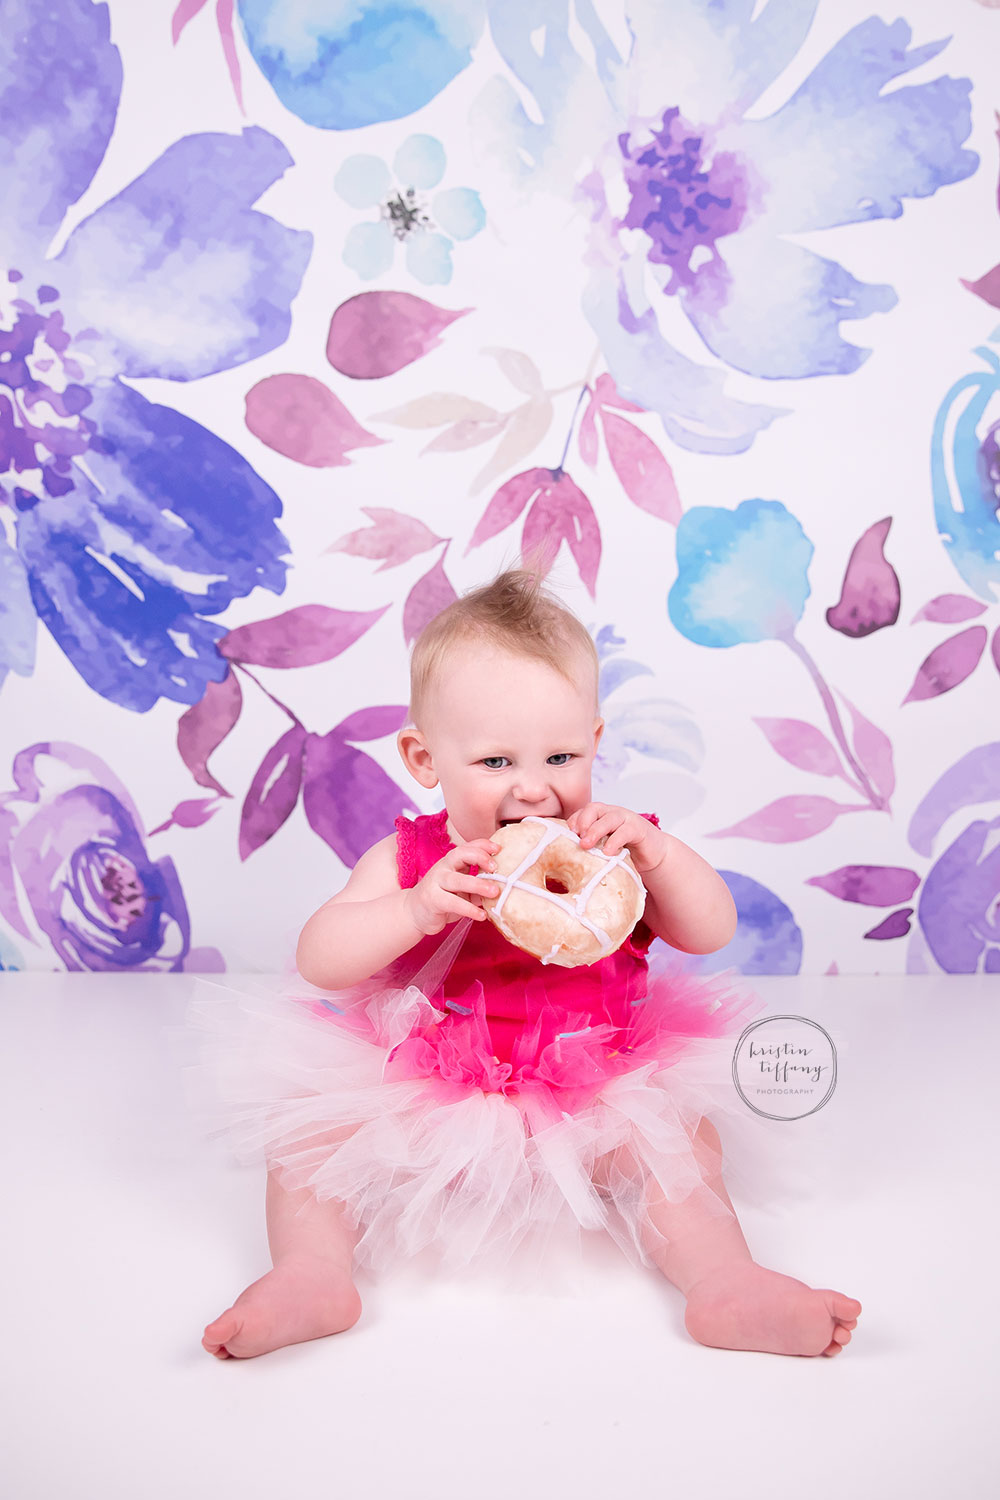 a photo of a baby eating a donut at a photoshoot